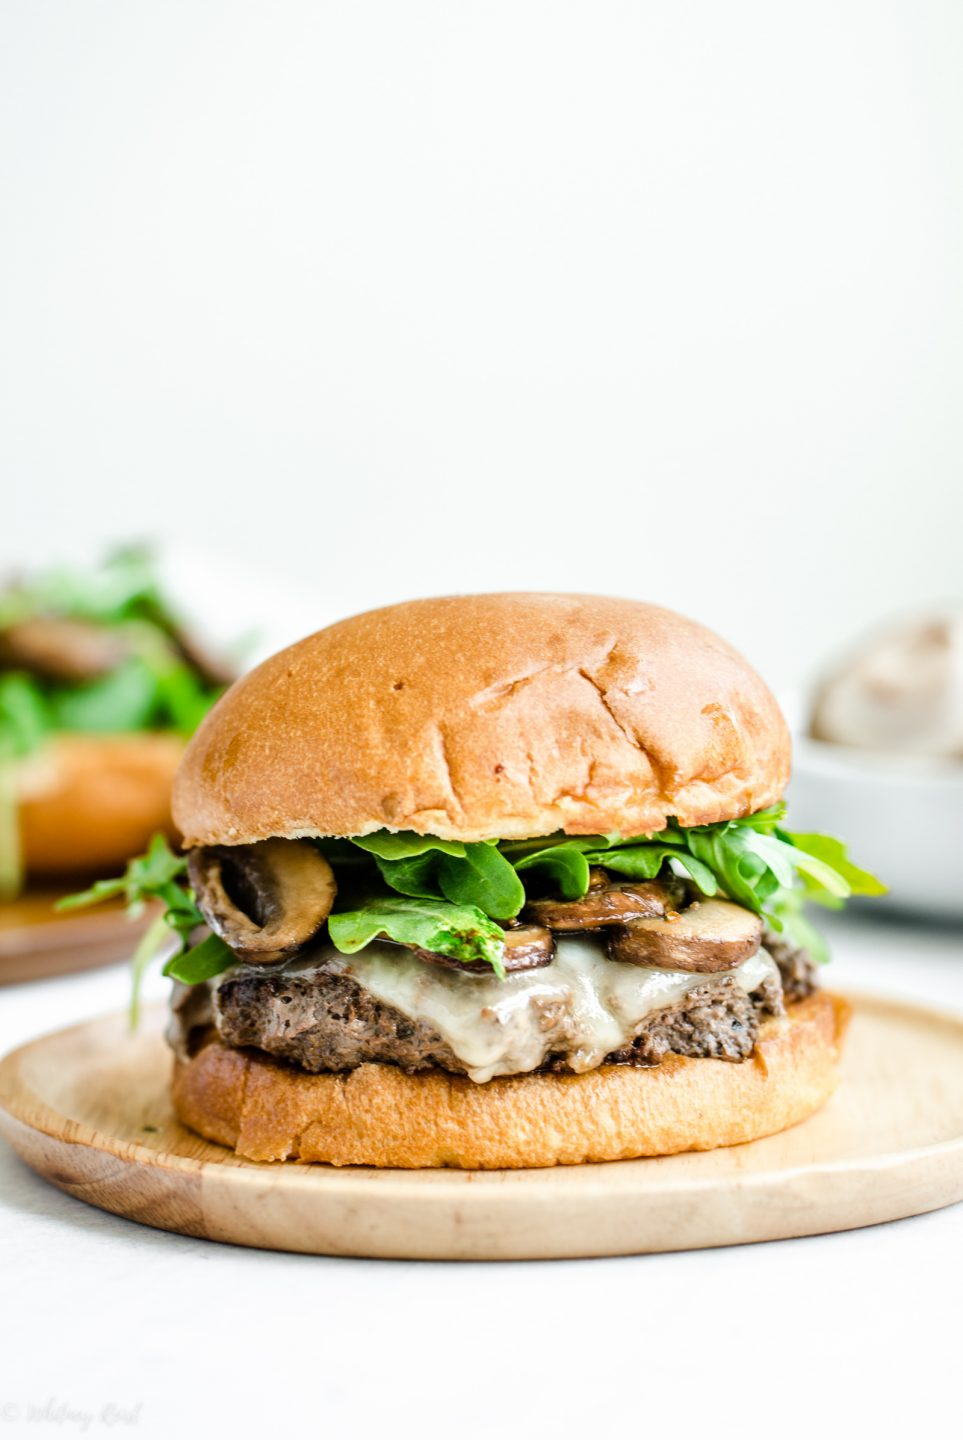 A mushroom swiss smashburger with arugula sitting on a wooden plate against a white backdrop.